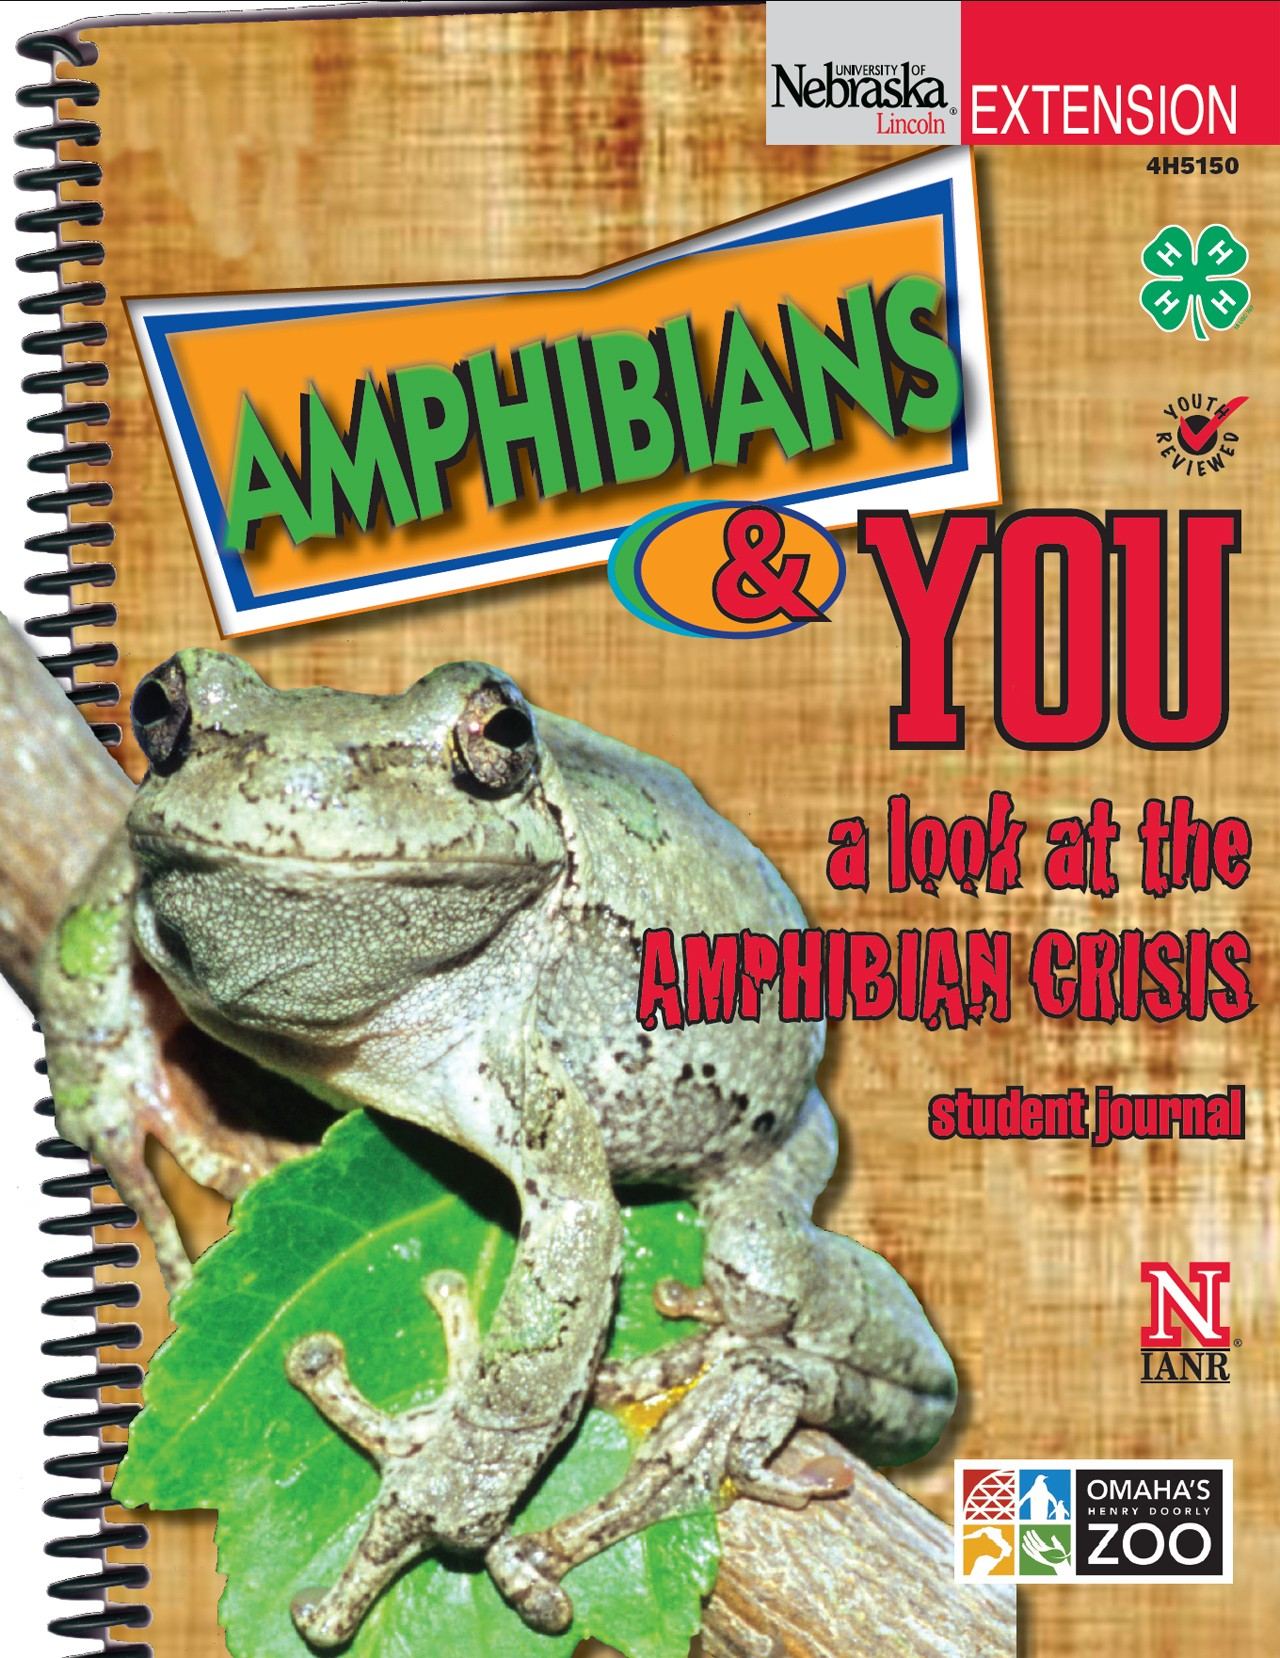 Amphibians and You